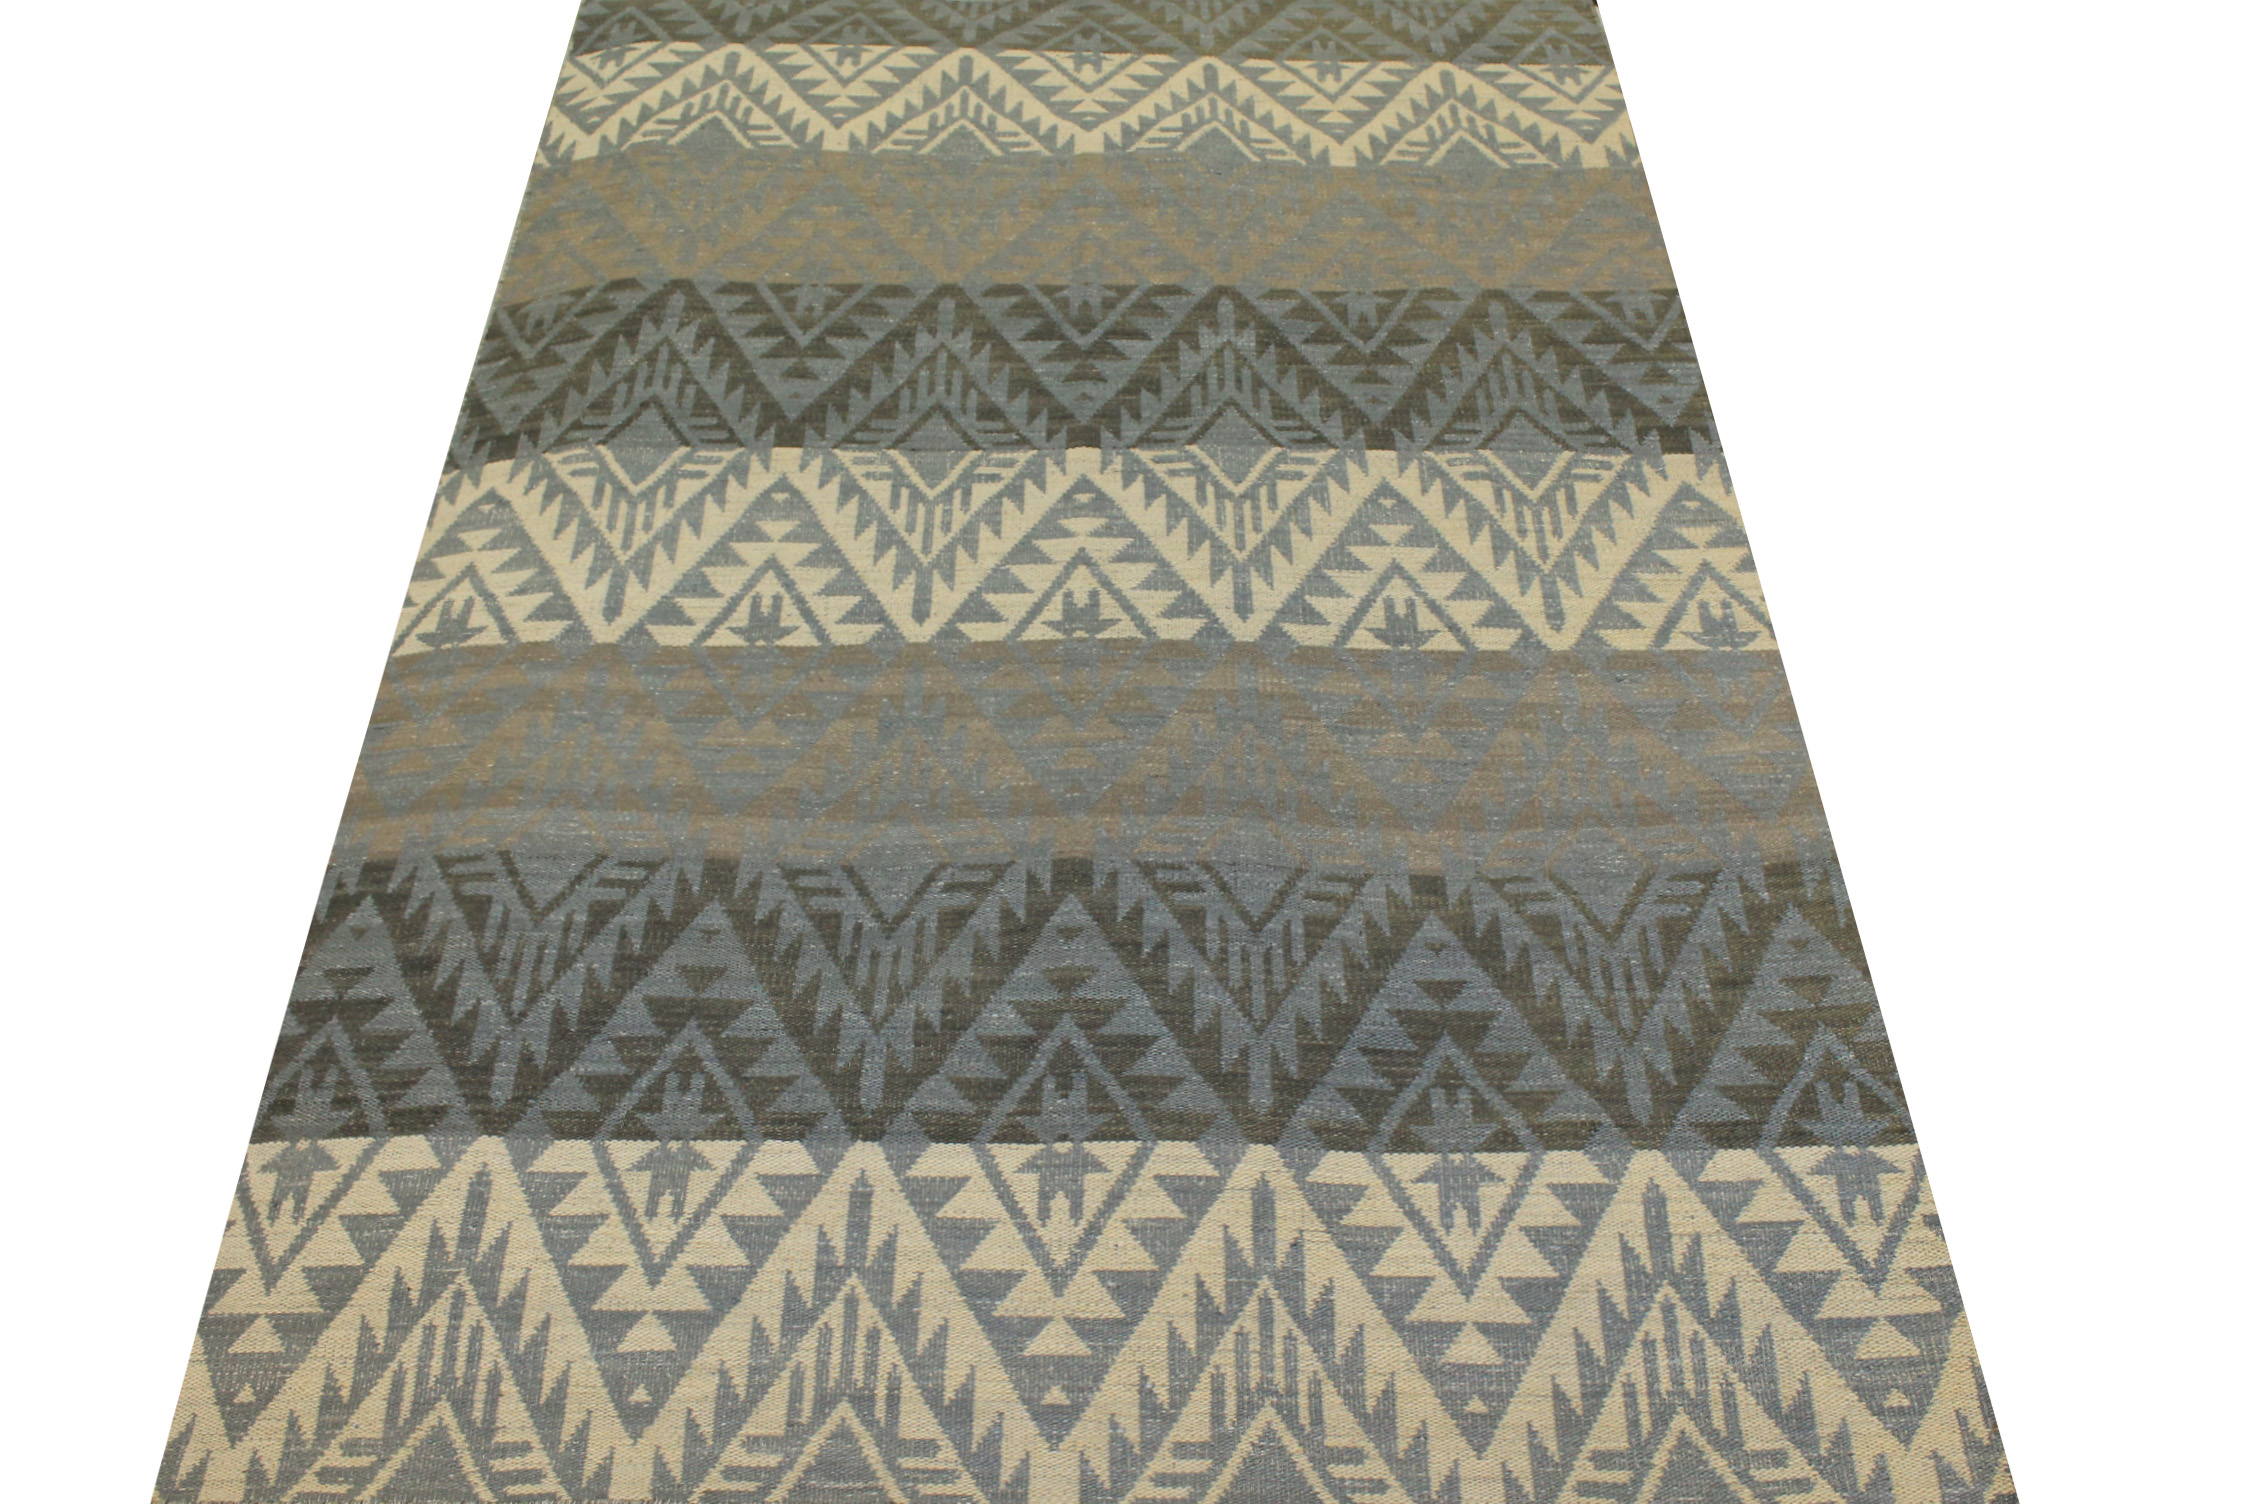 6x9 Flat Weave Hand Knotted Wool Area Rug - MR21037